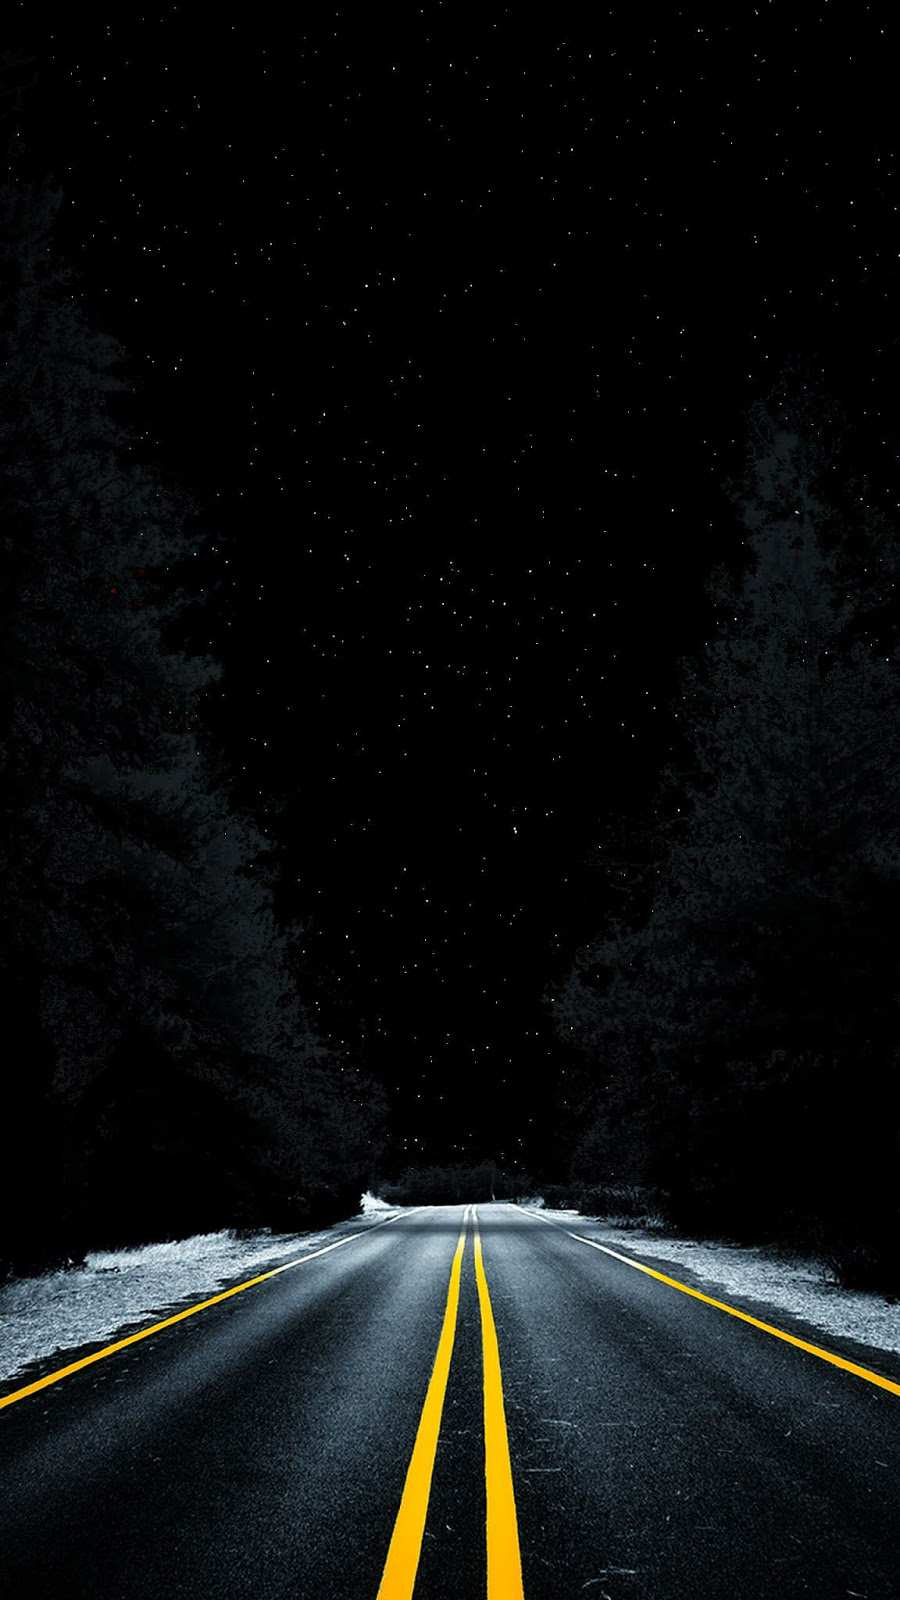 Night Road Space View From Earth Iphone Wallpaper Iphone